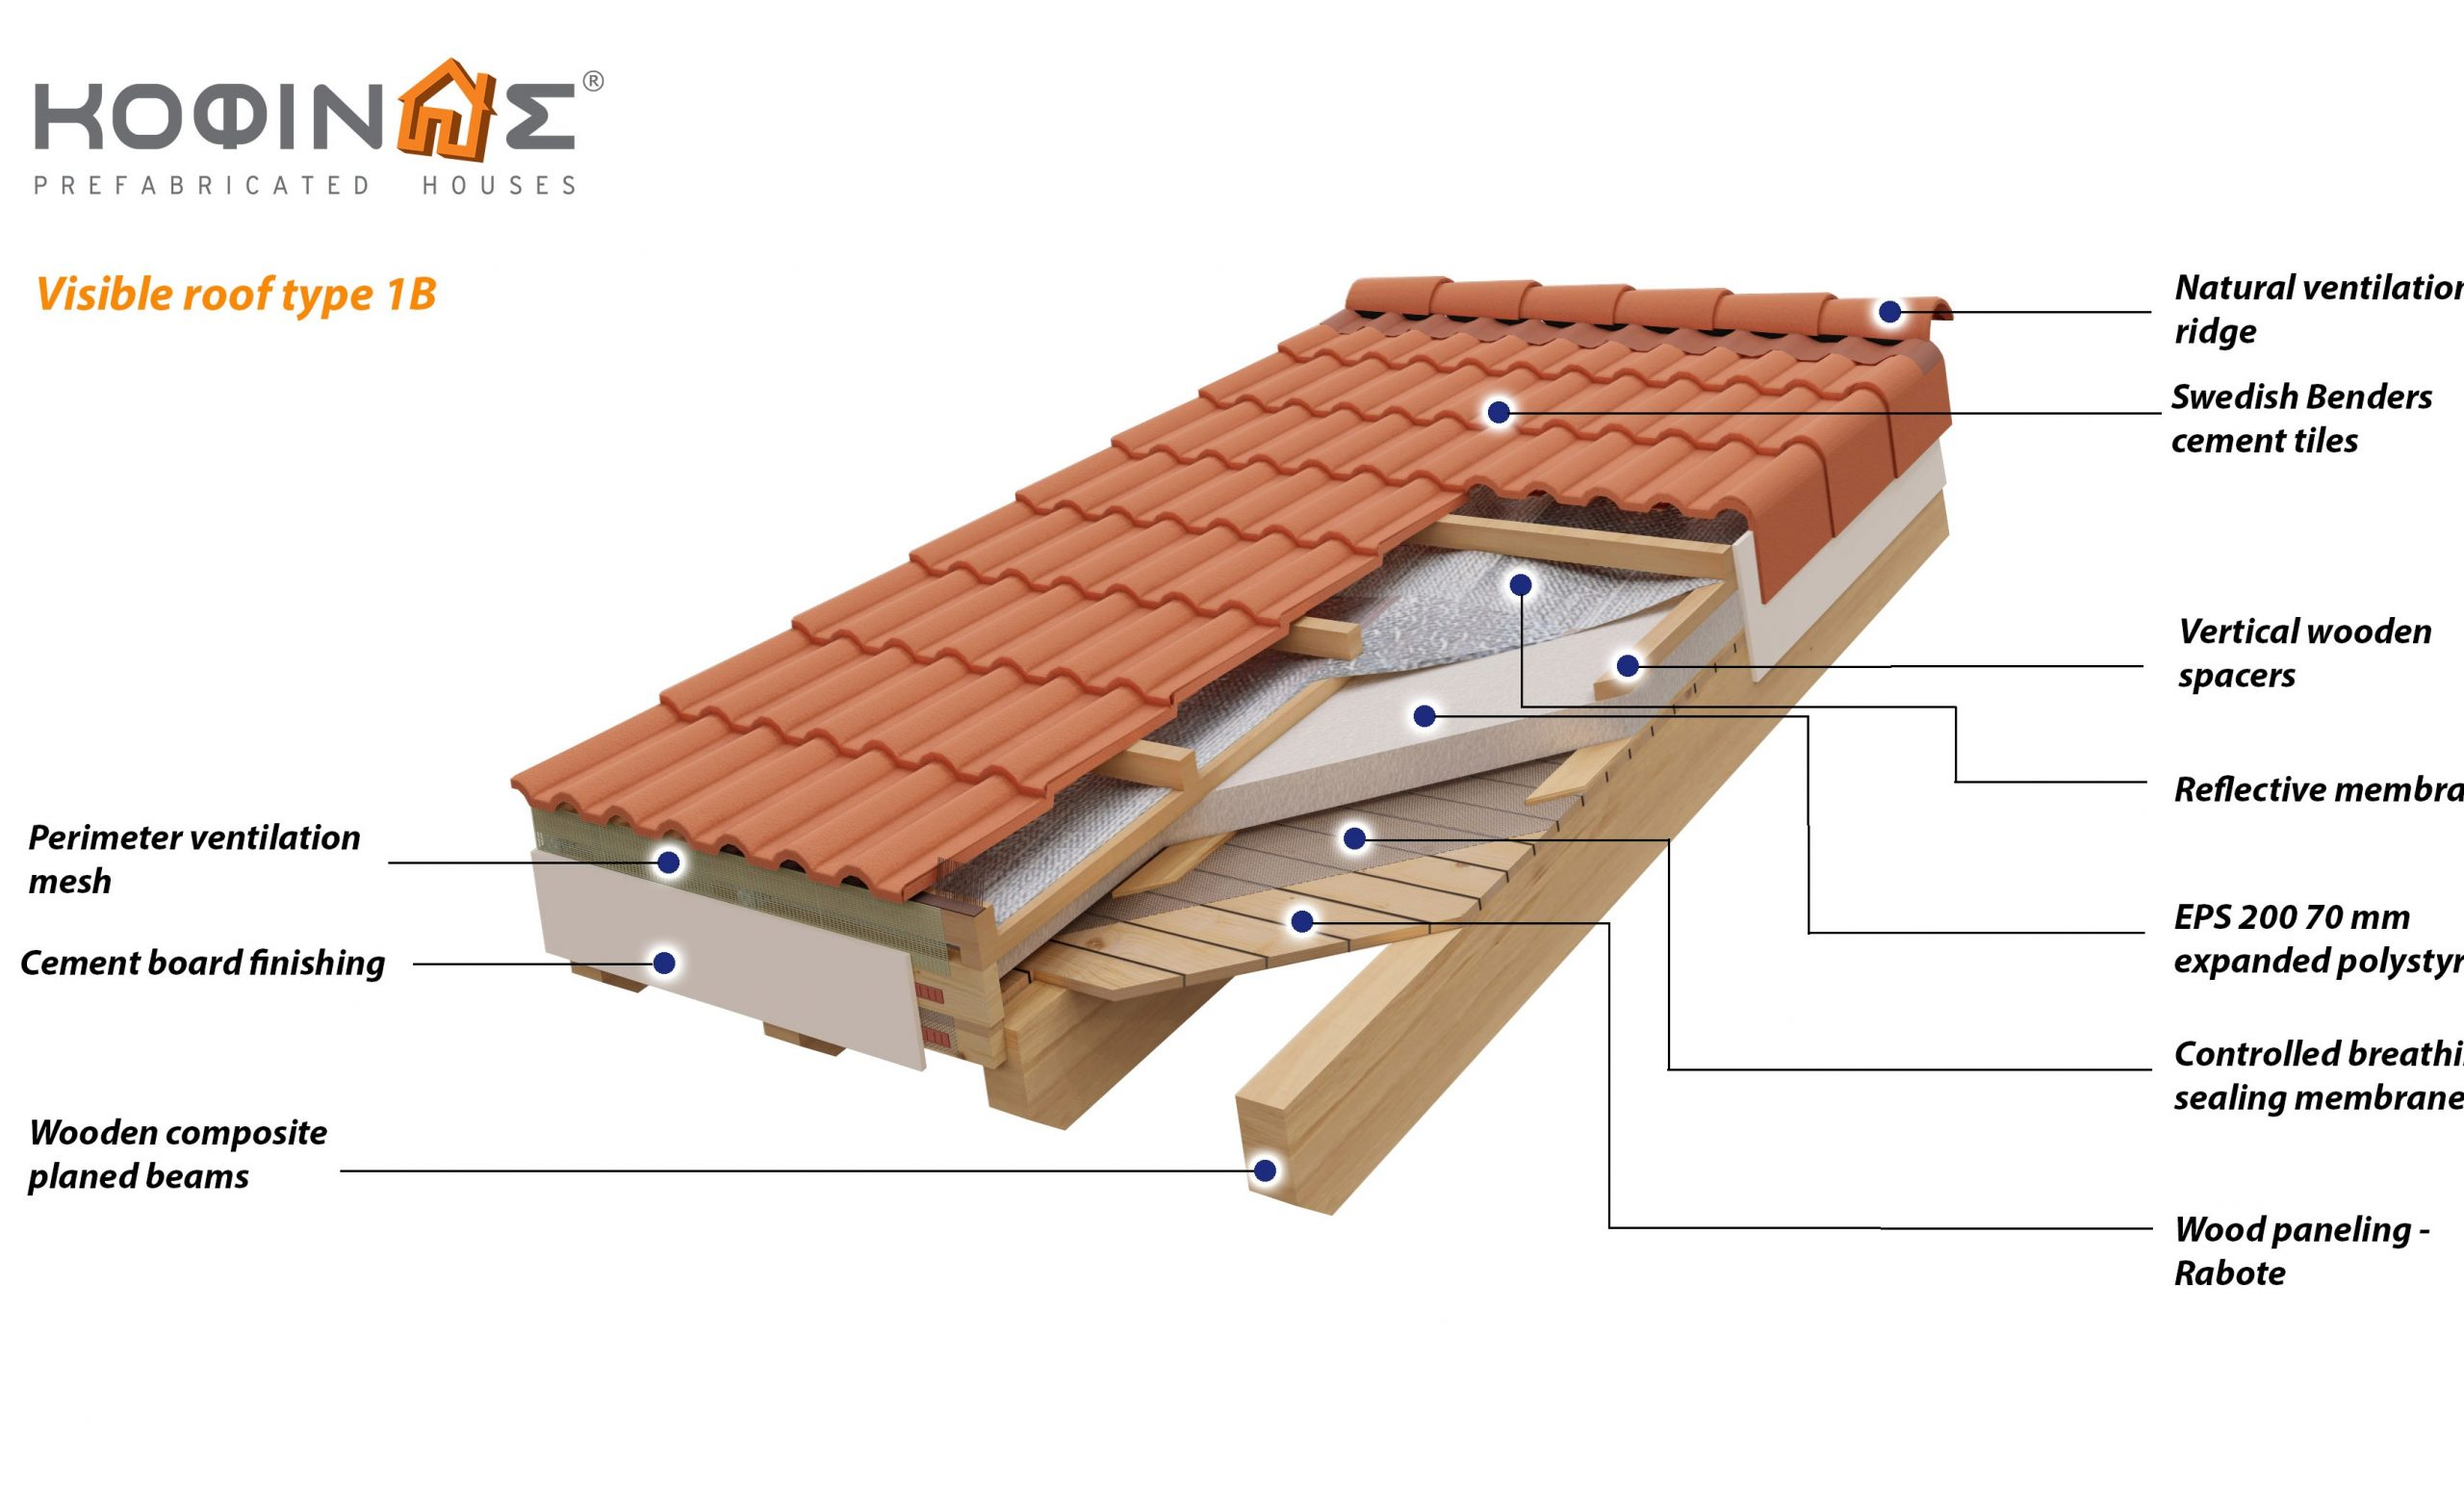 Visible roof type 1B